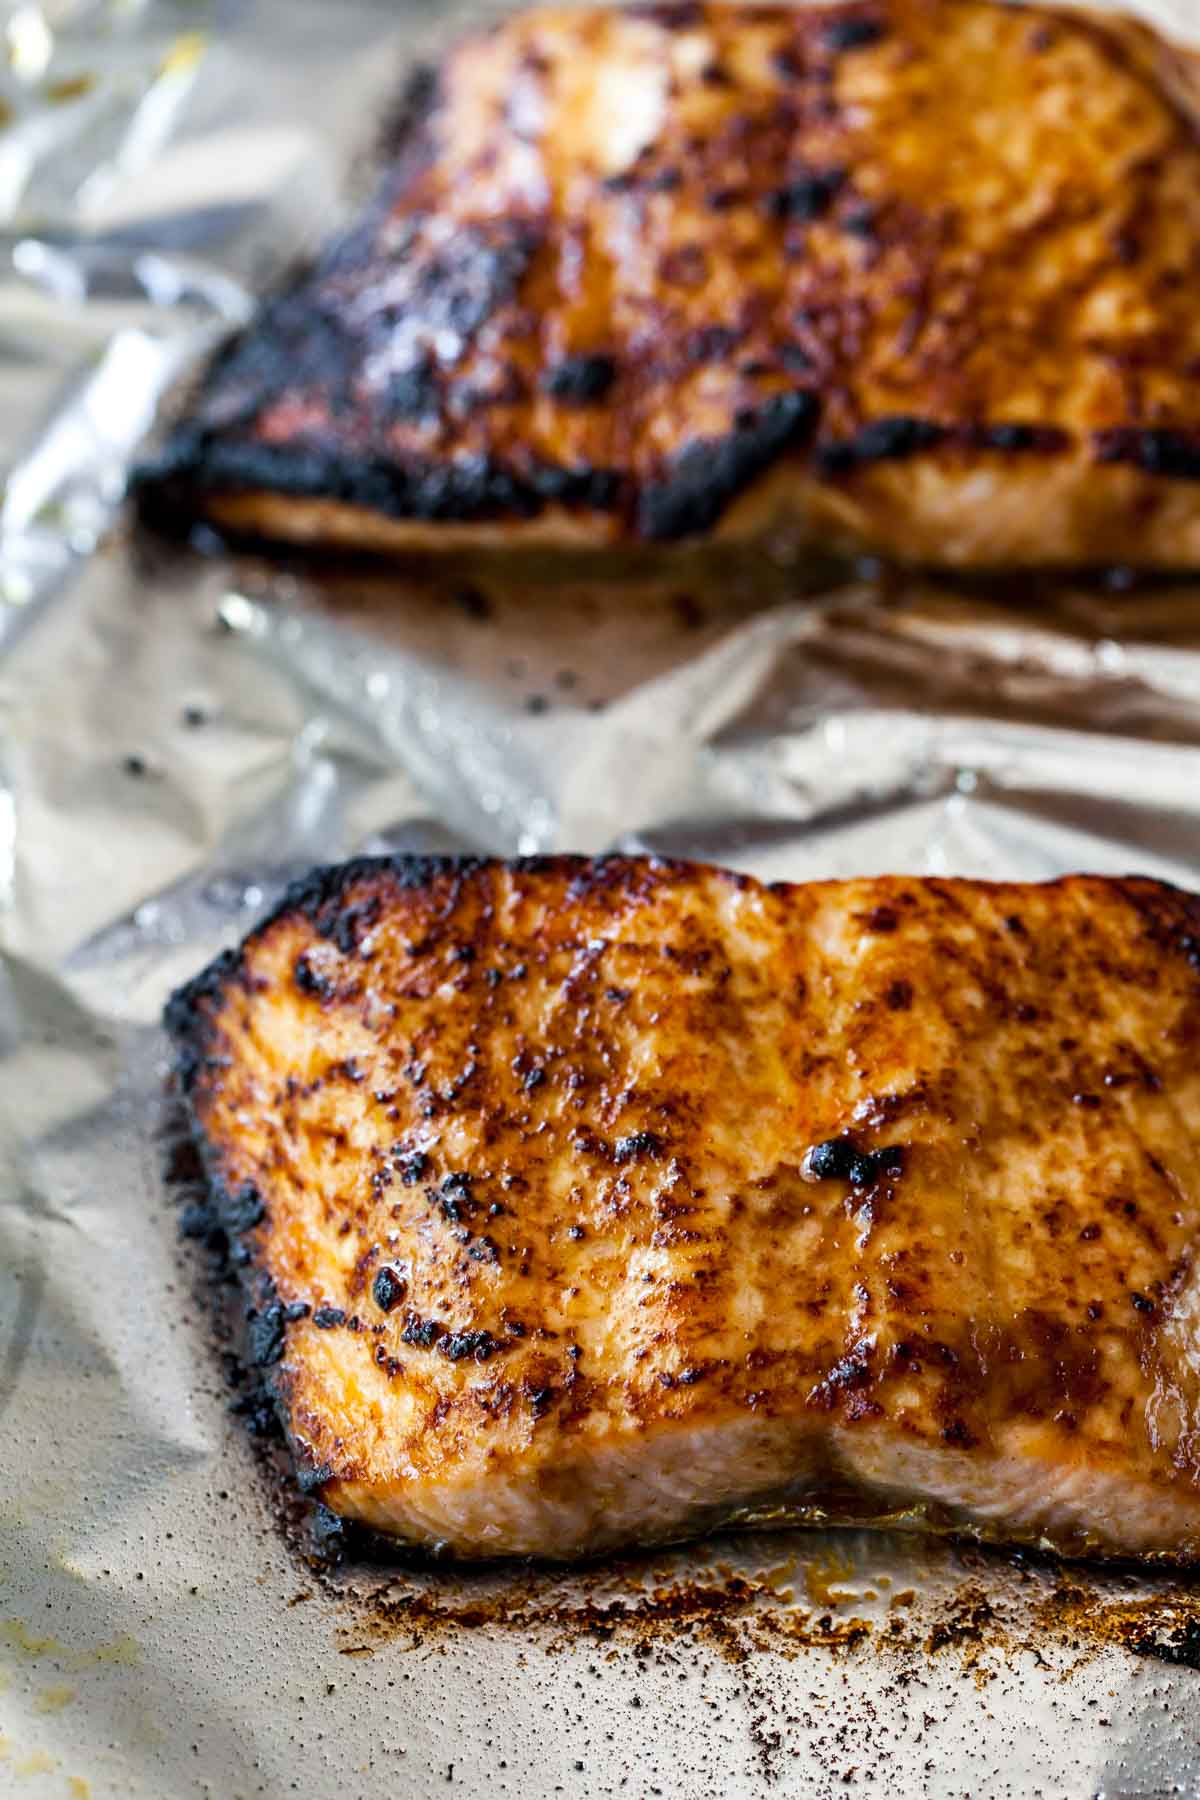 Broiled salmon fillets on a baking pan covered in foil